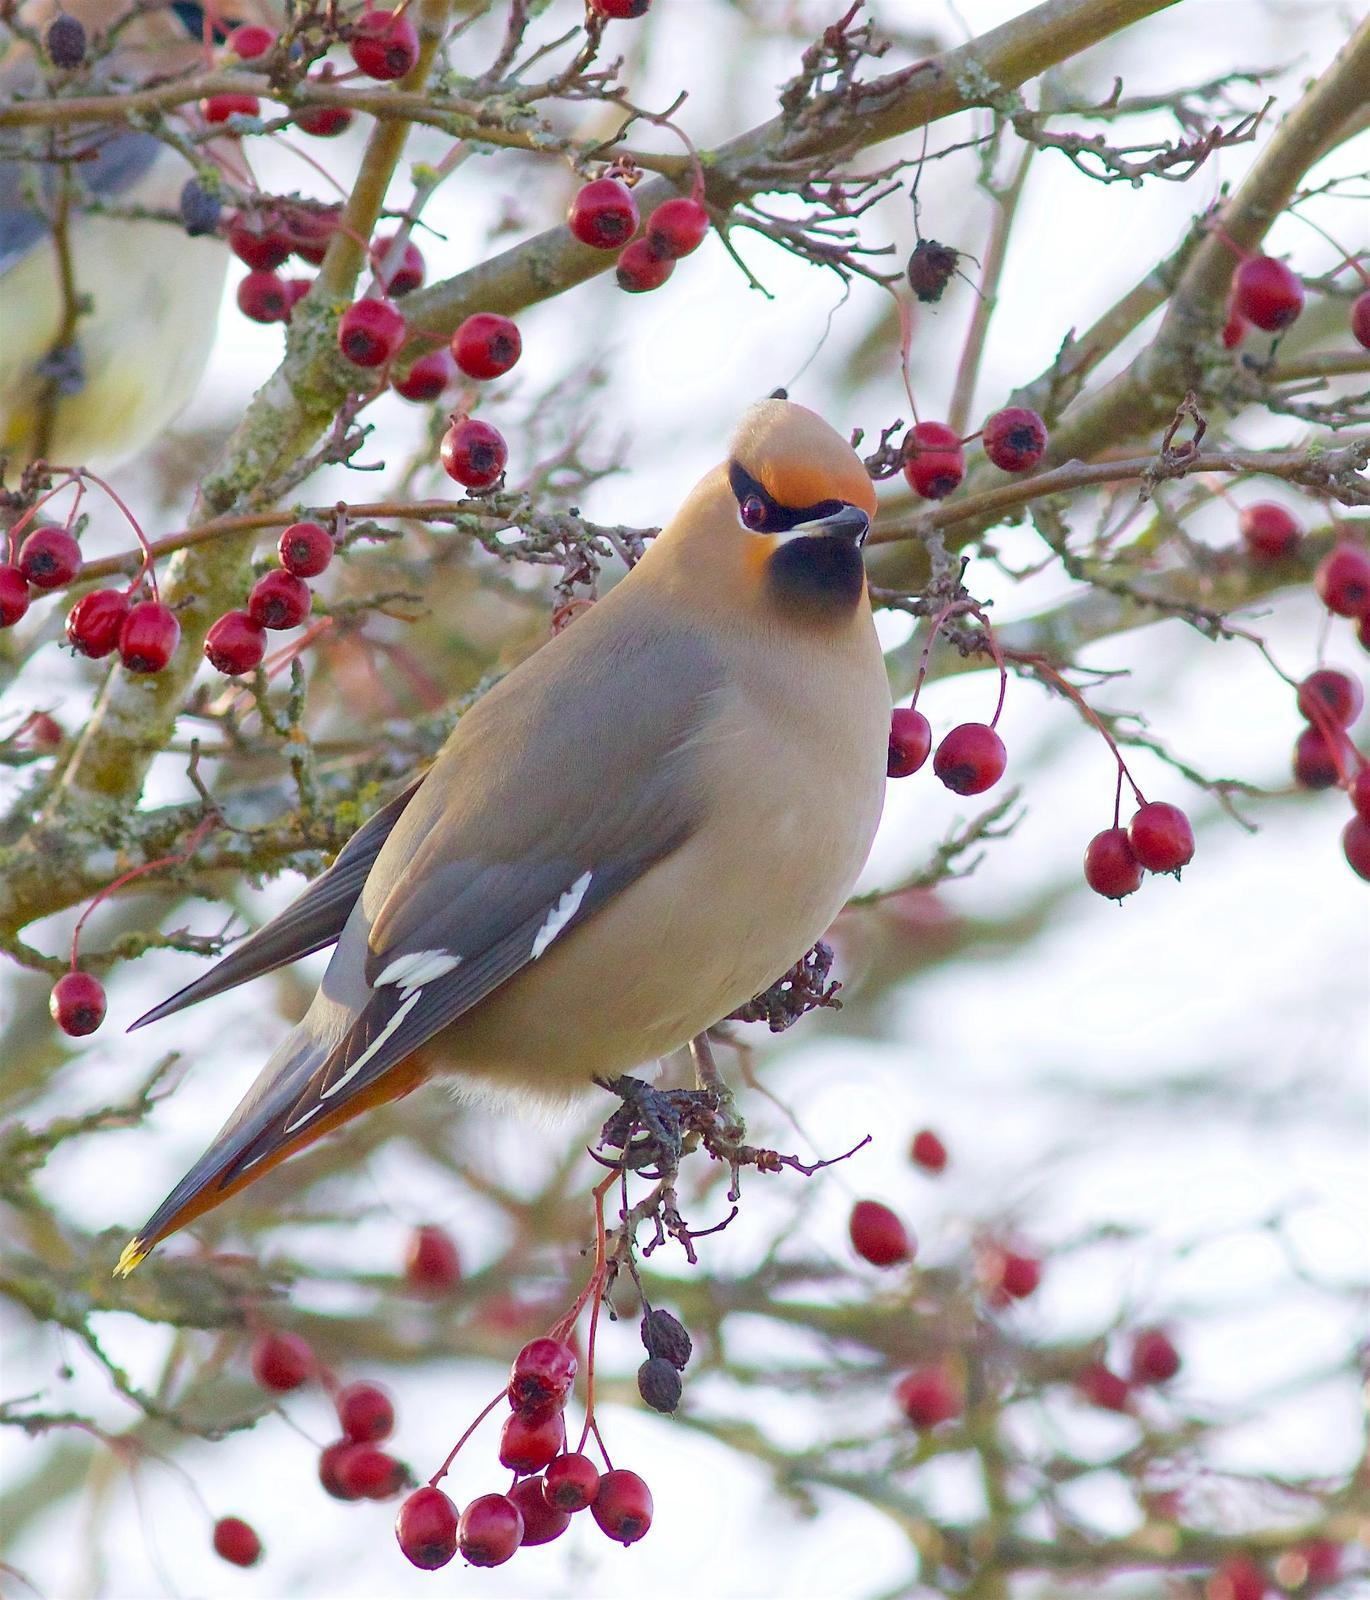 Bohemian Waxwing Photo by Kathryn Keith